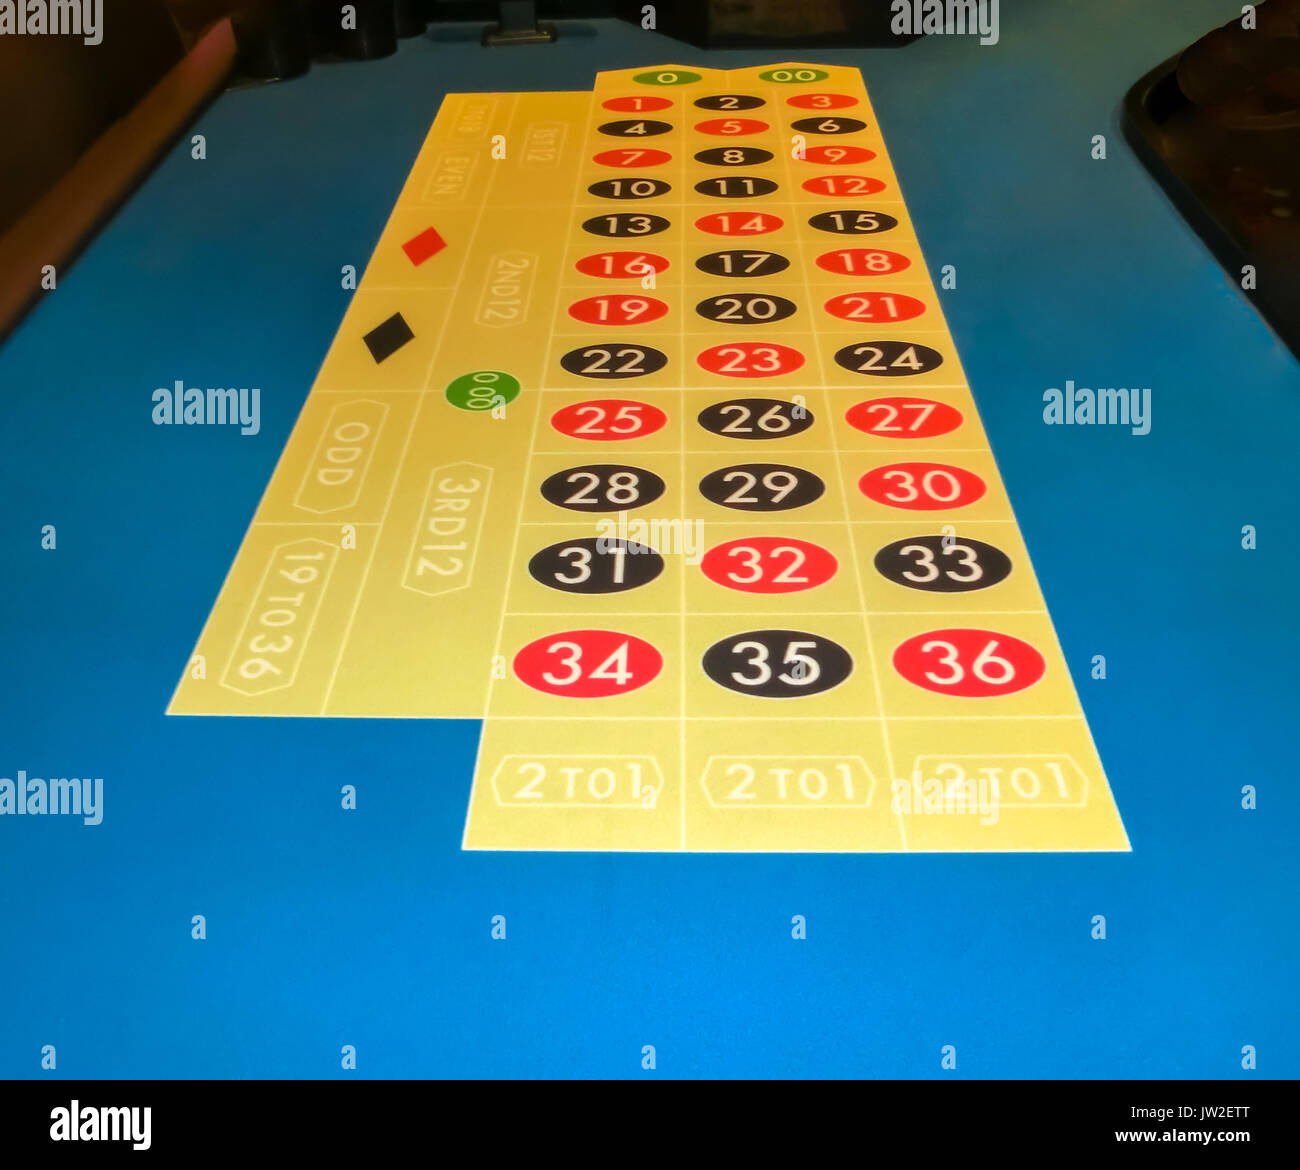 The casino Roulette gambling game table - Stock Image